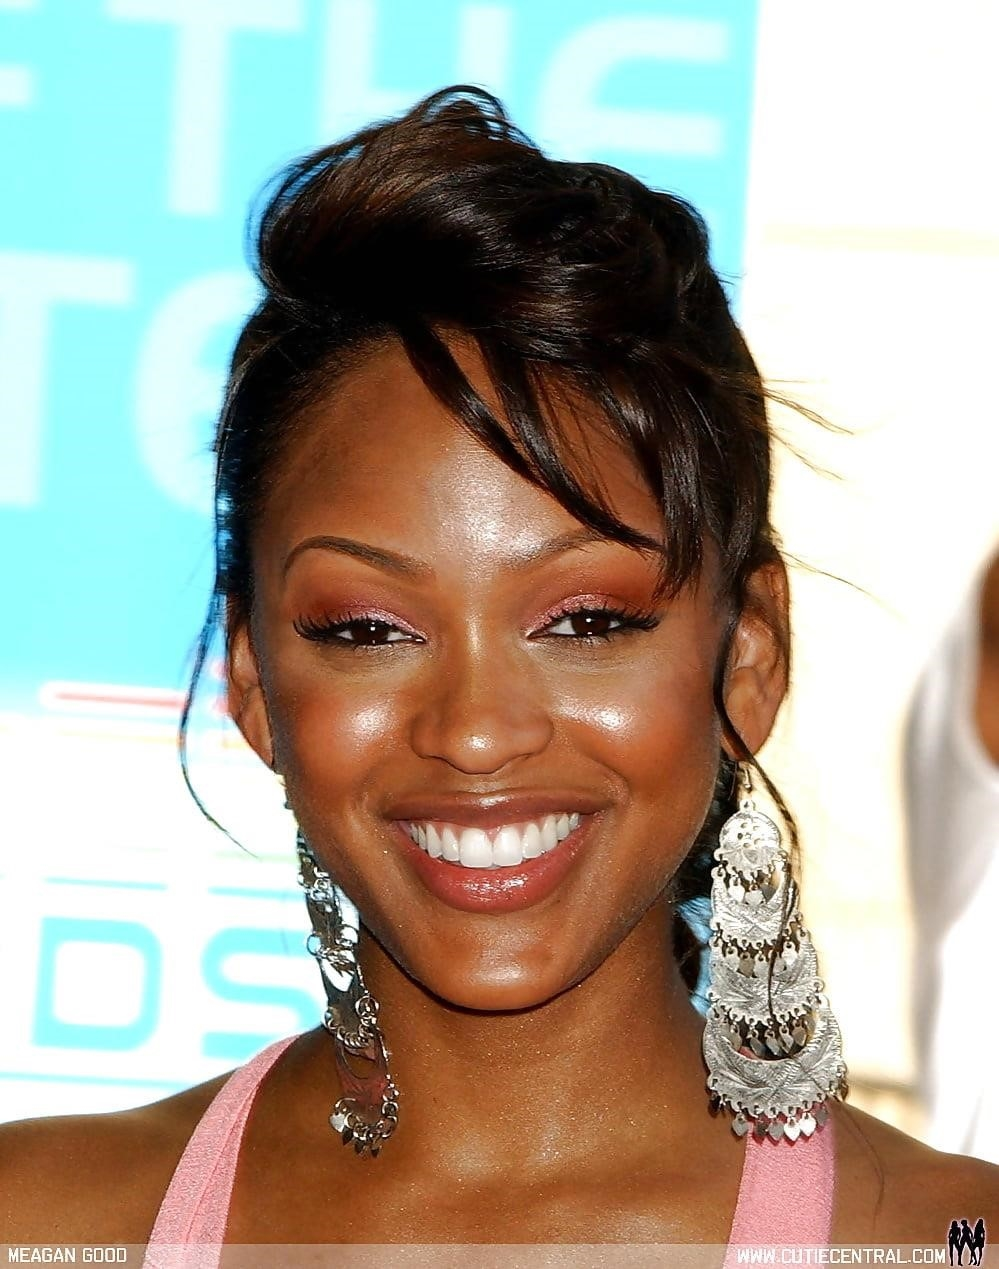 Meagan good nude pictures-7615